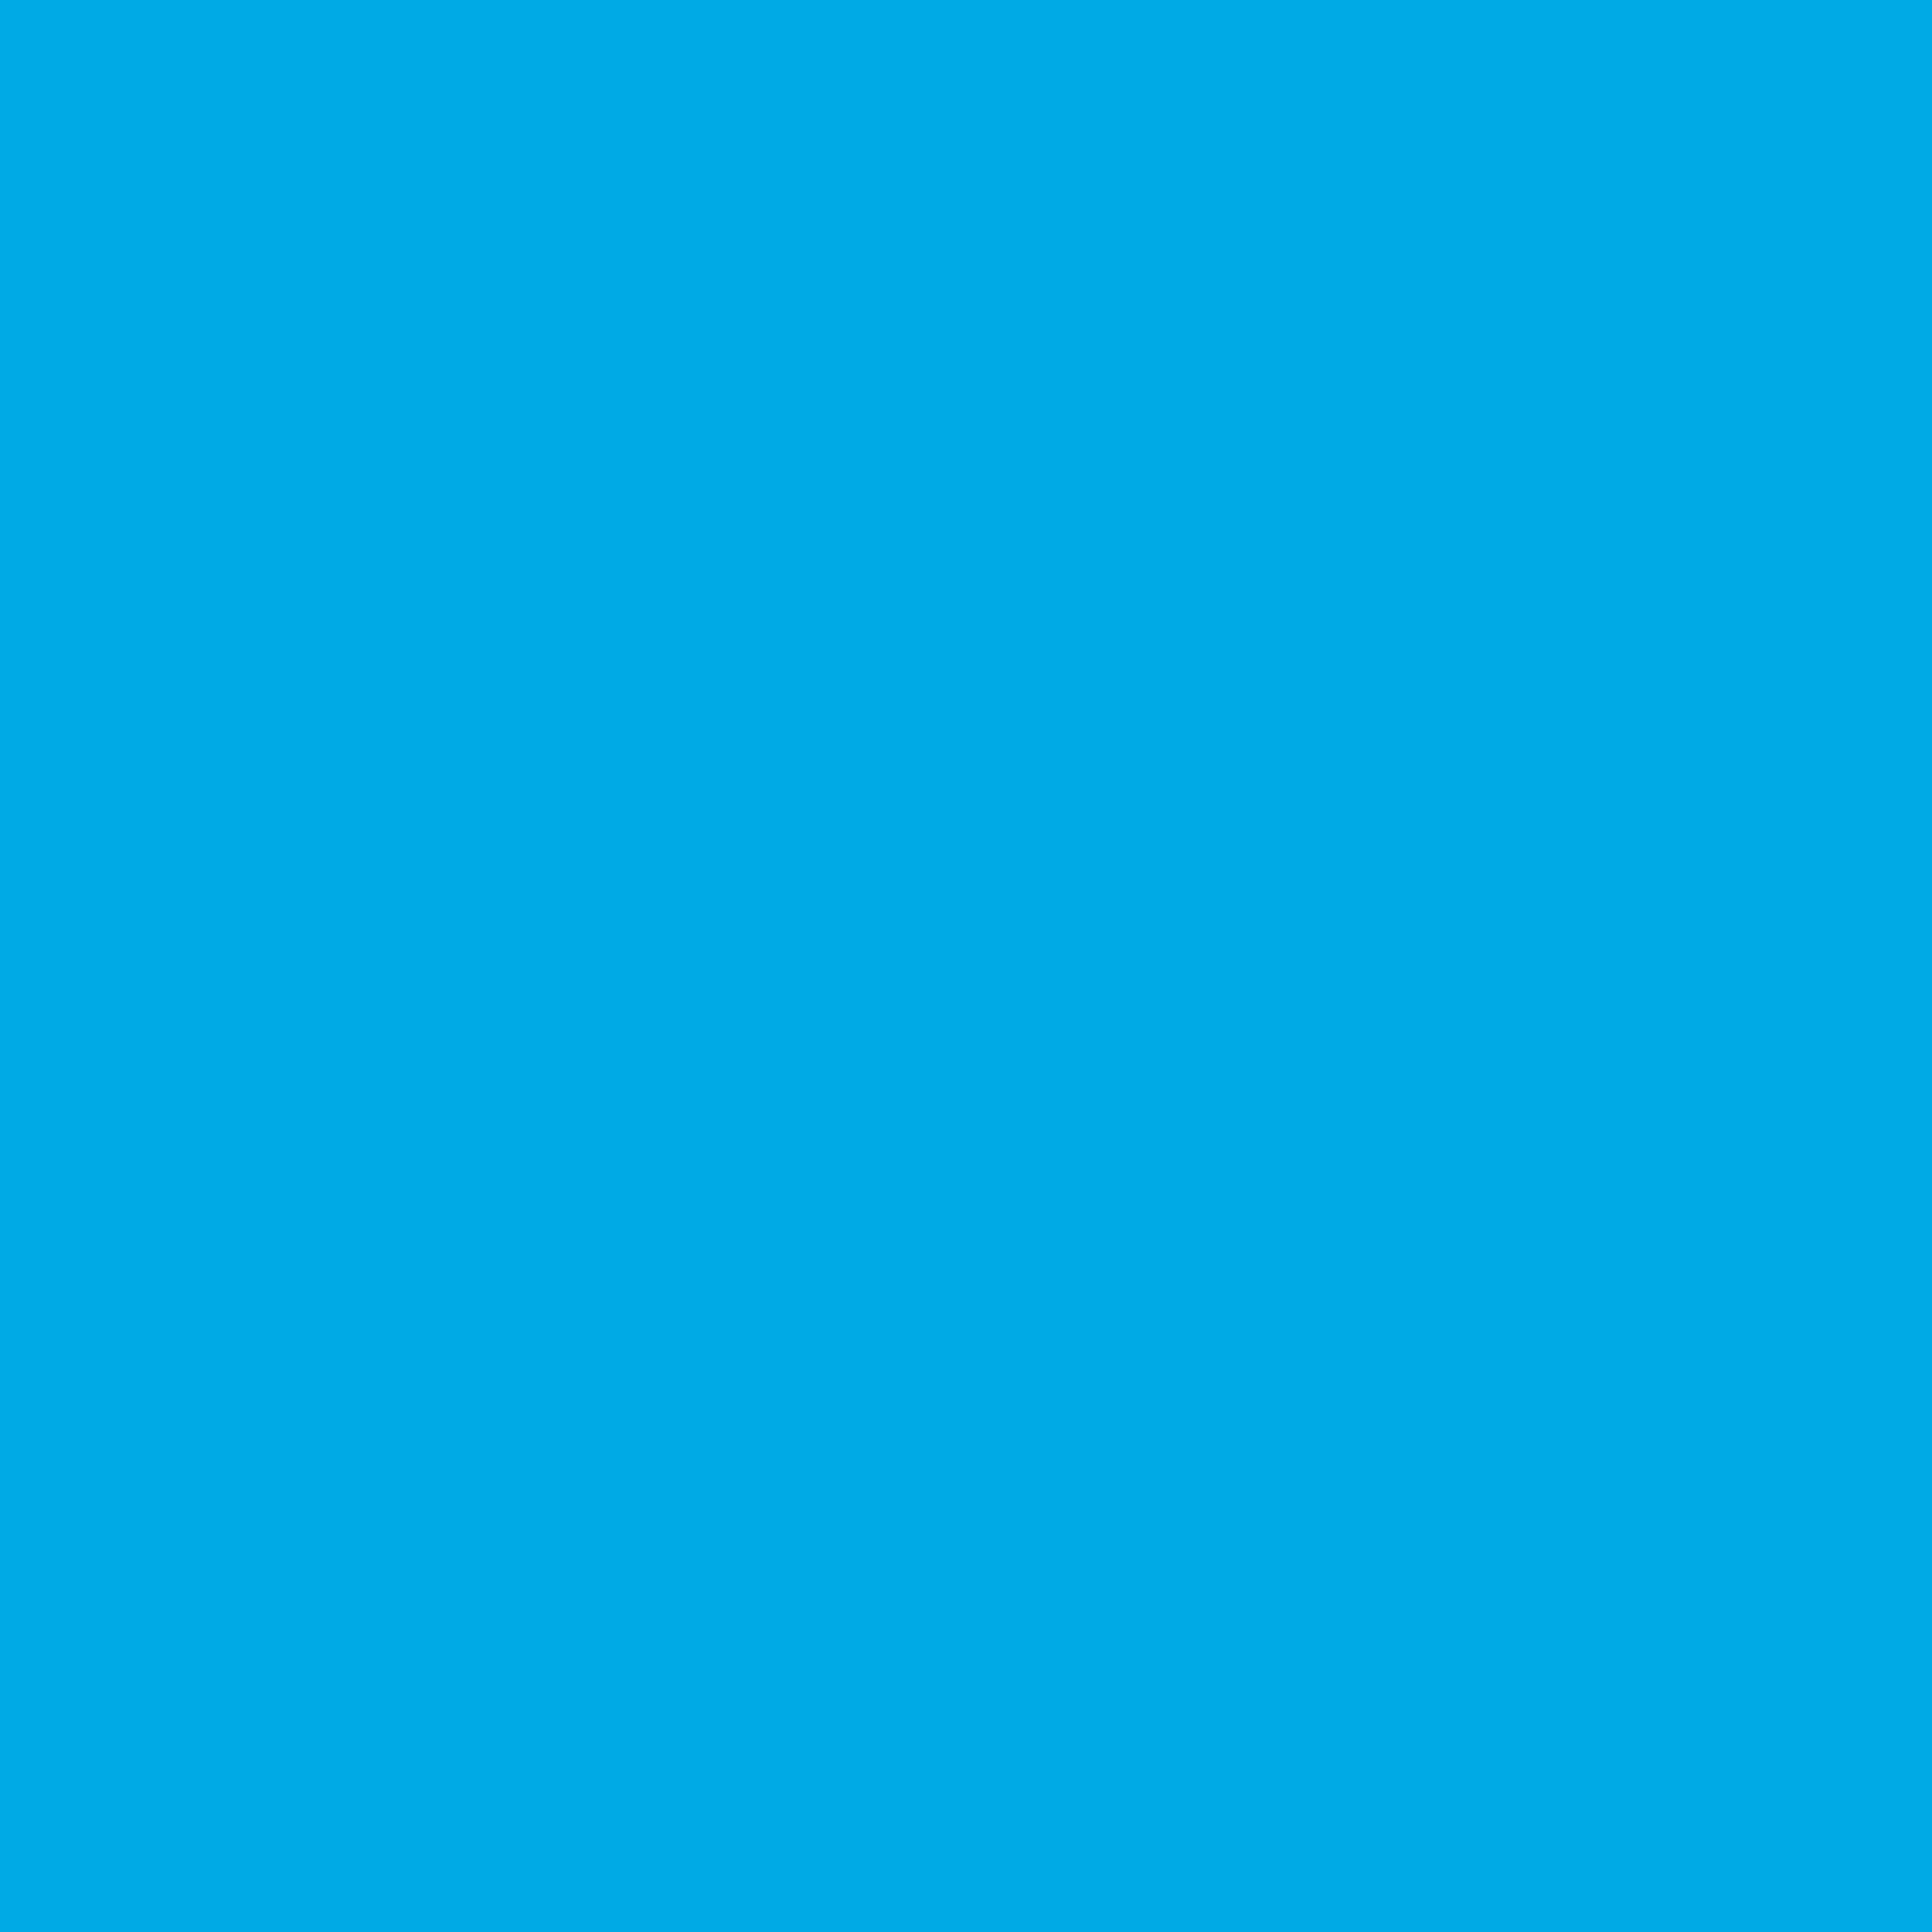 2732x2732 Spanish Sky Blue Solid Color Background